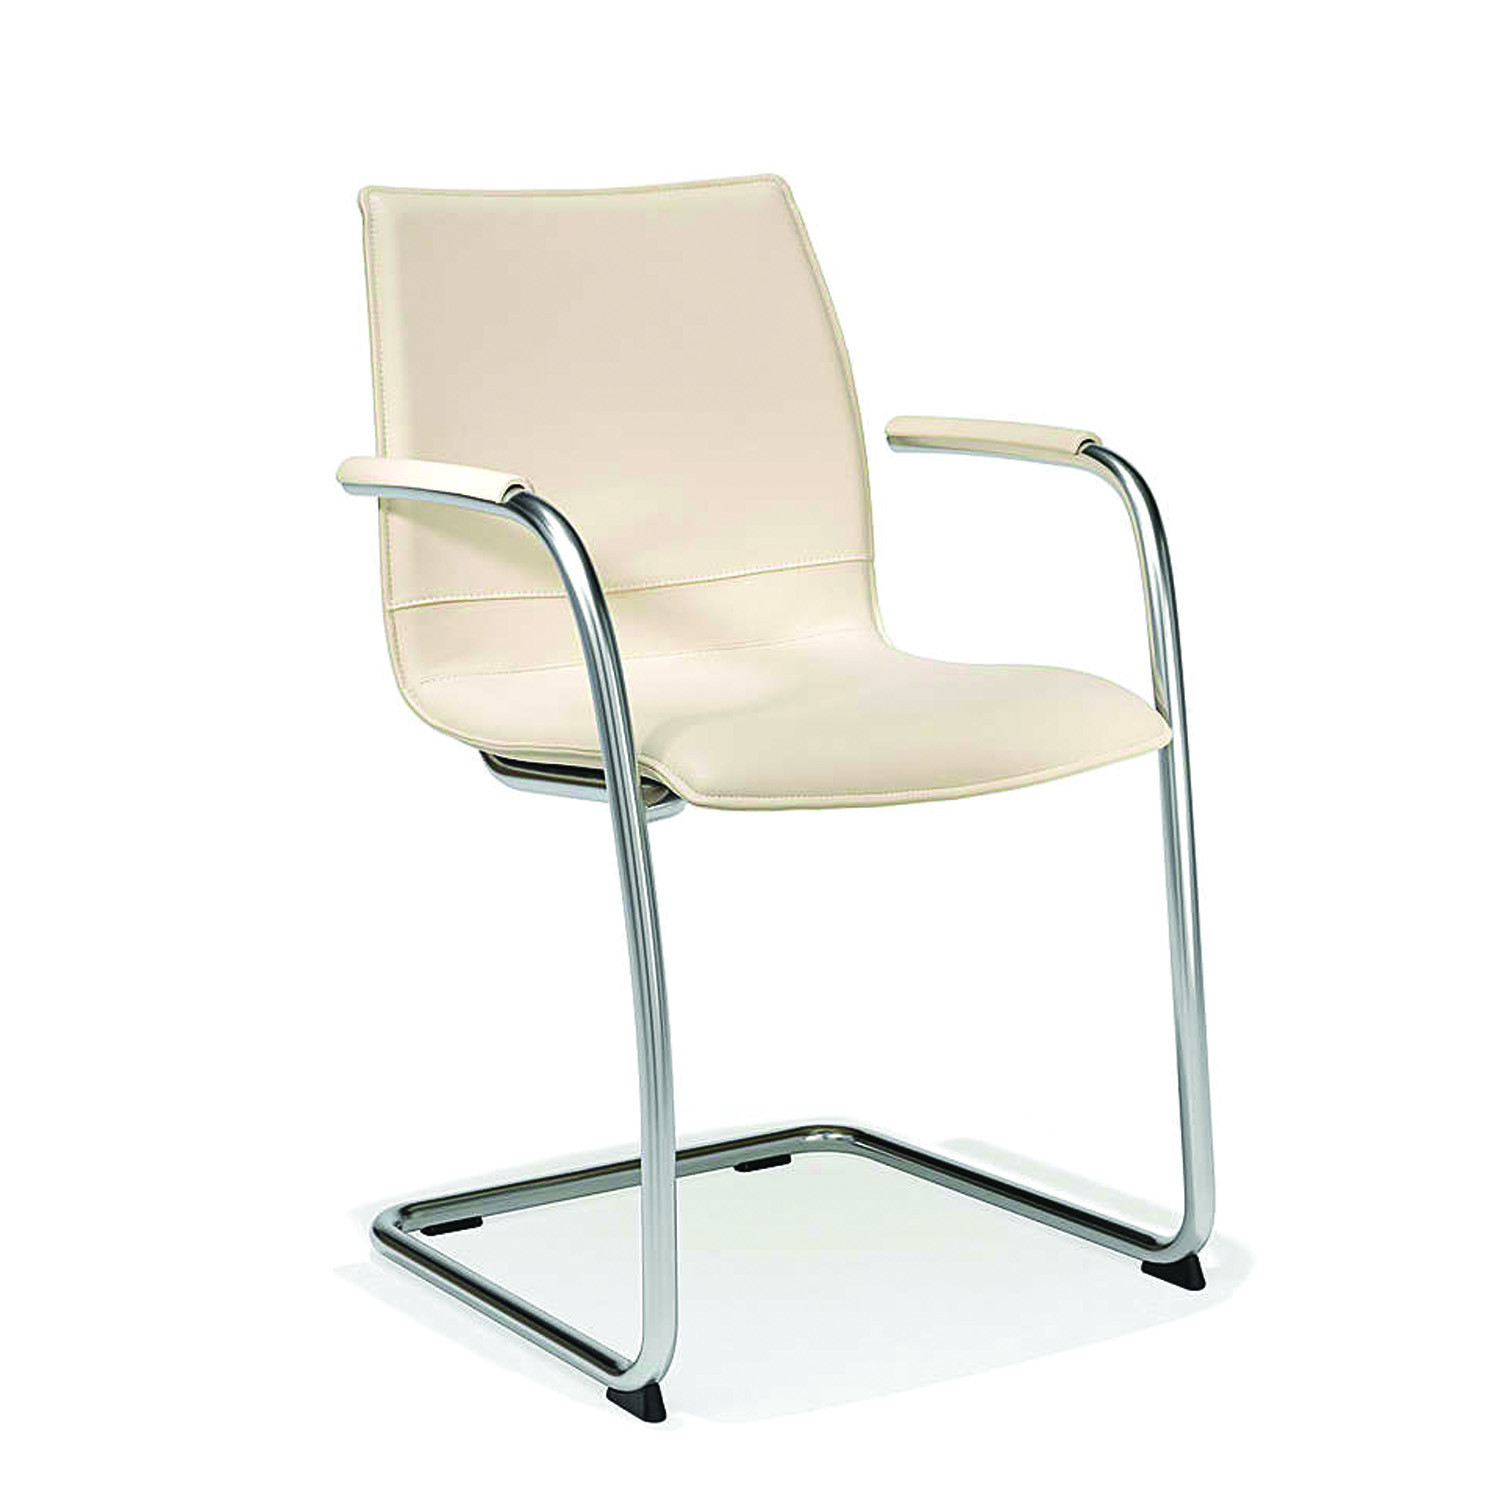 2100 Uni_Verso Cantilever Base with armrests